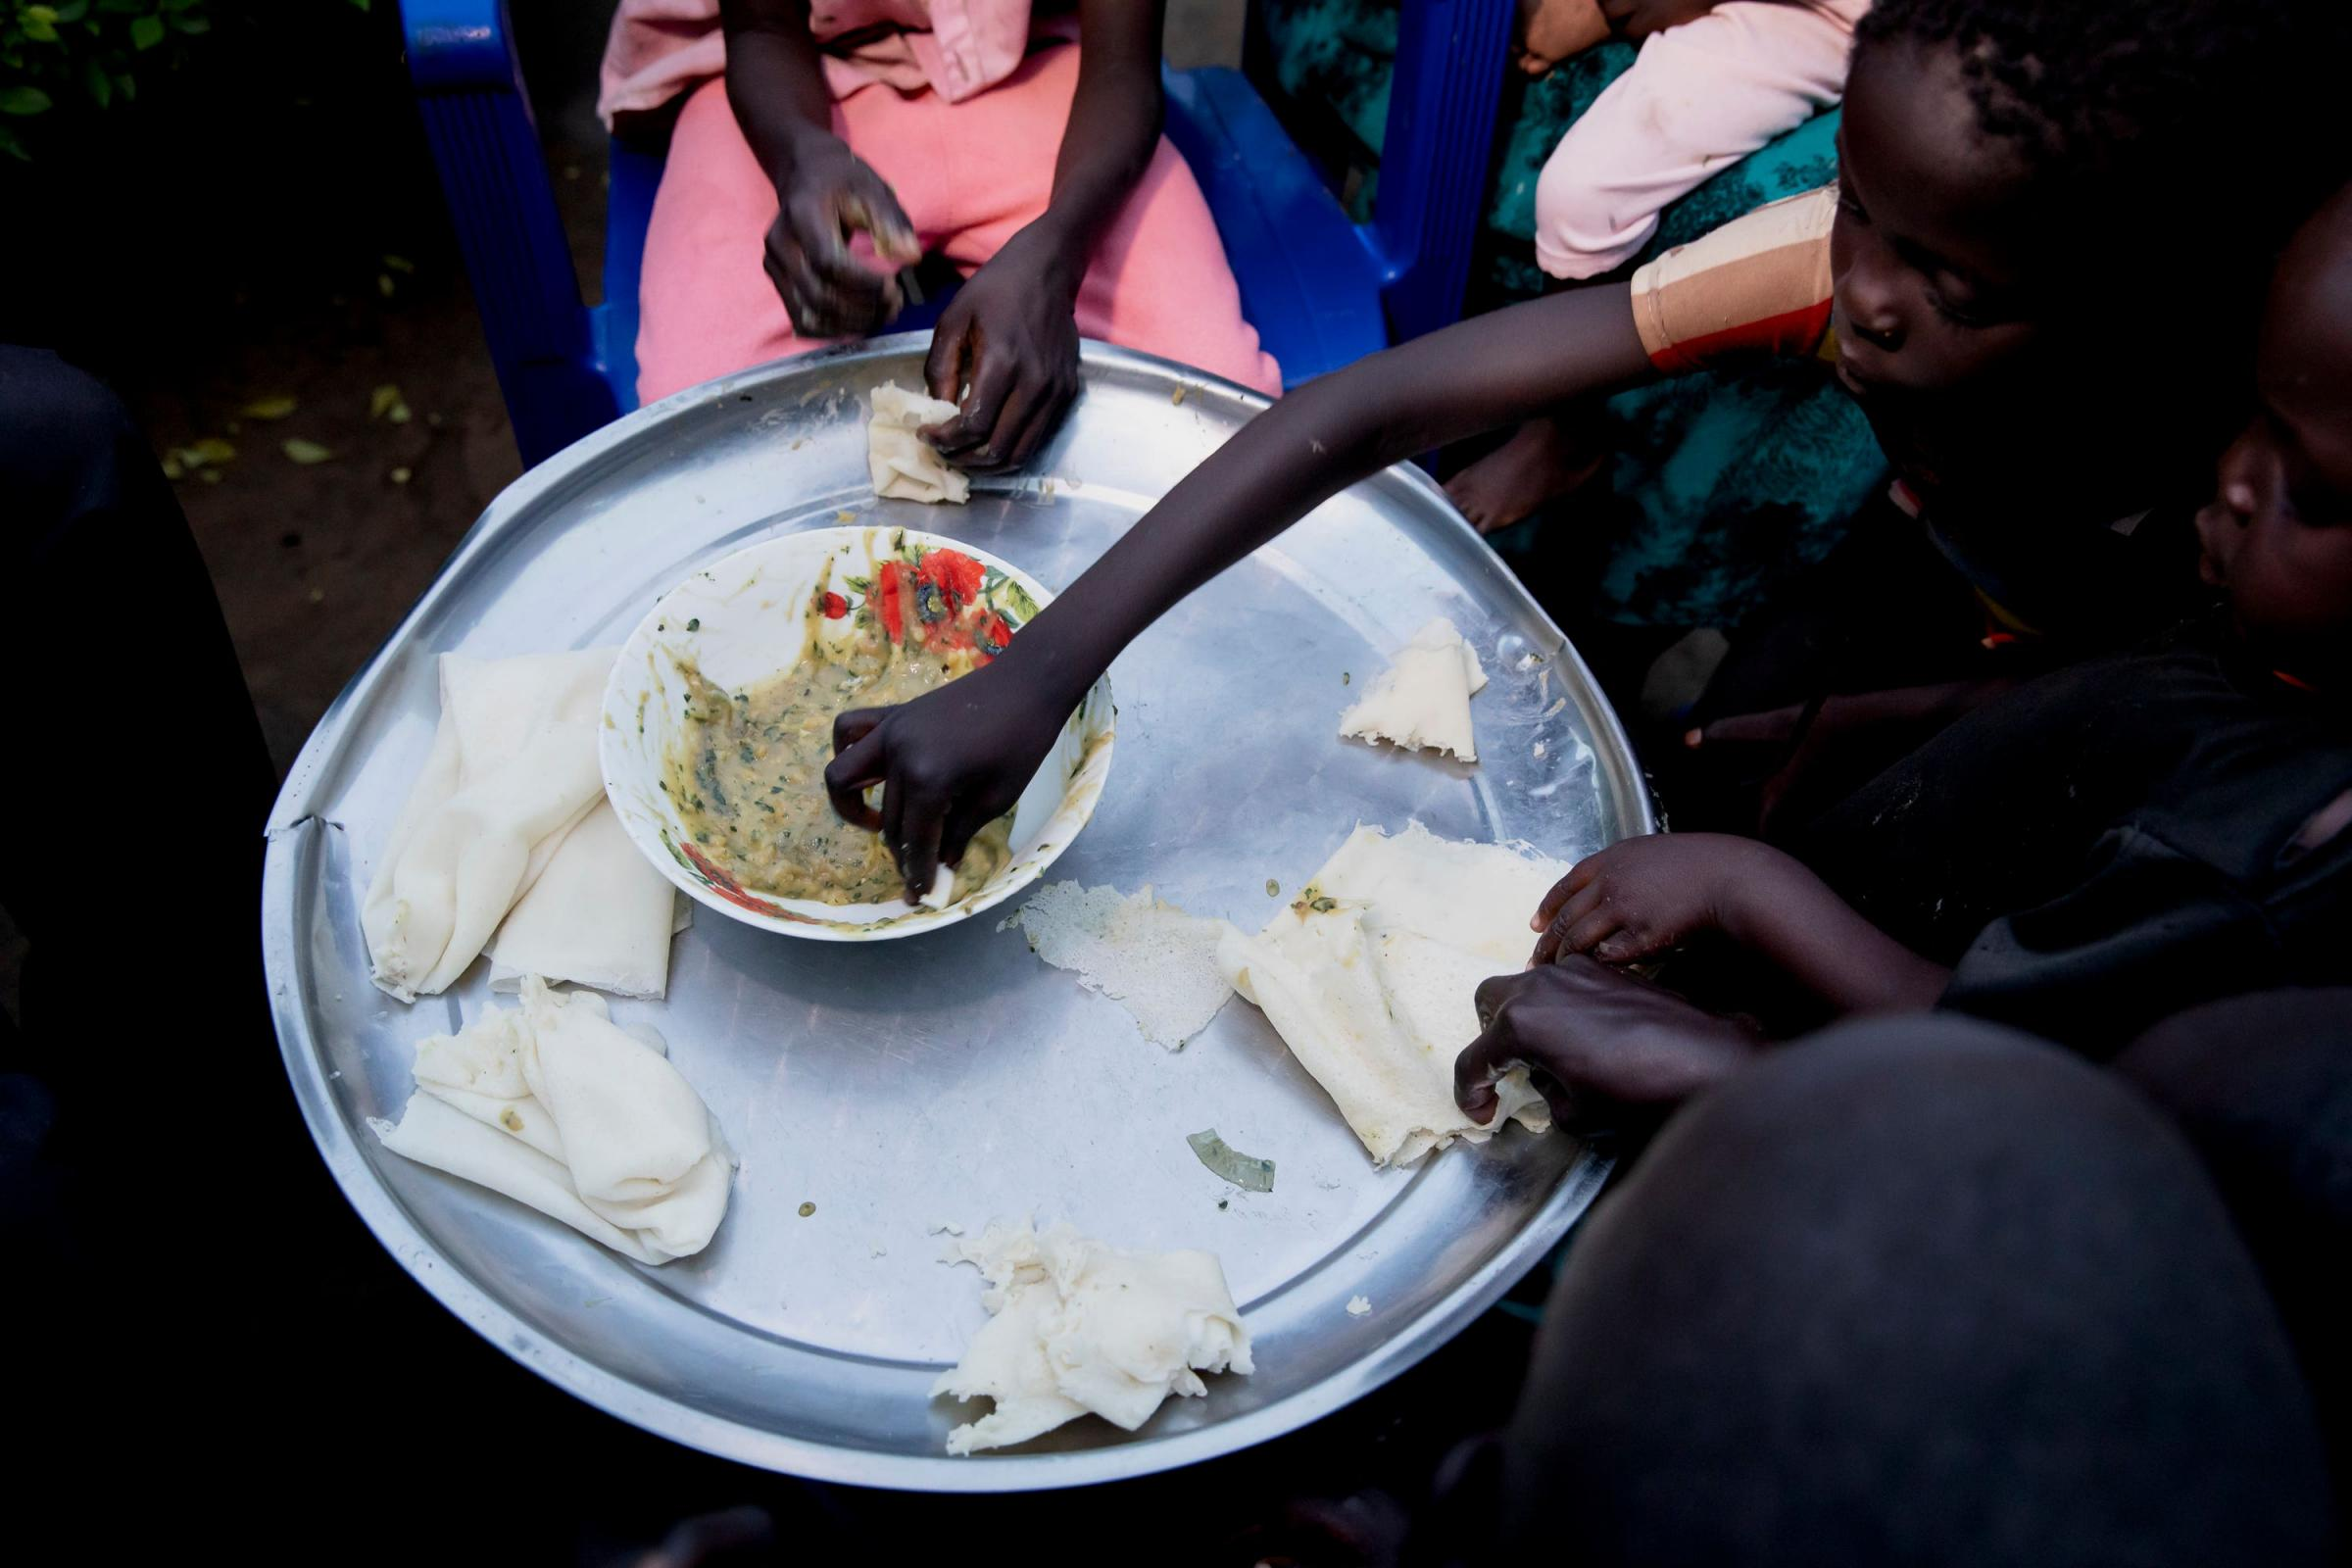 UN says hunger will rise in 23 global hotspots in next three months